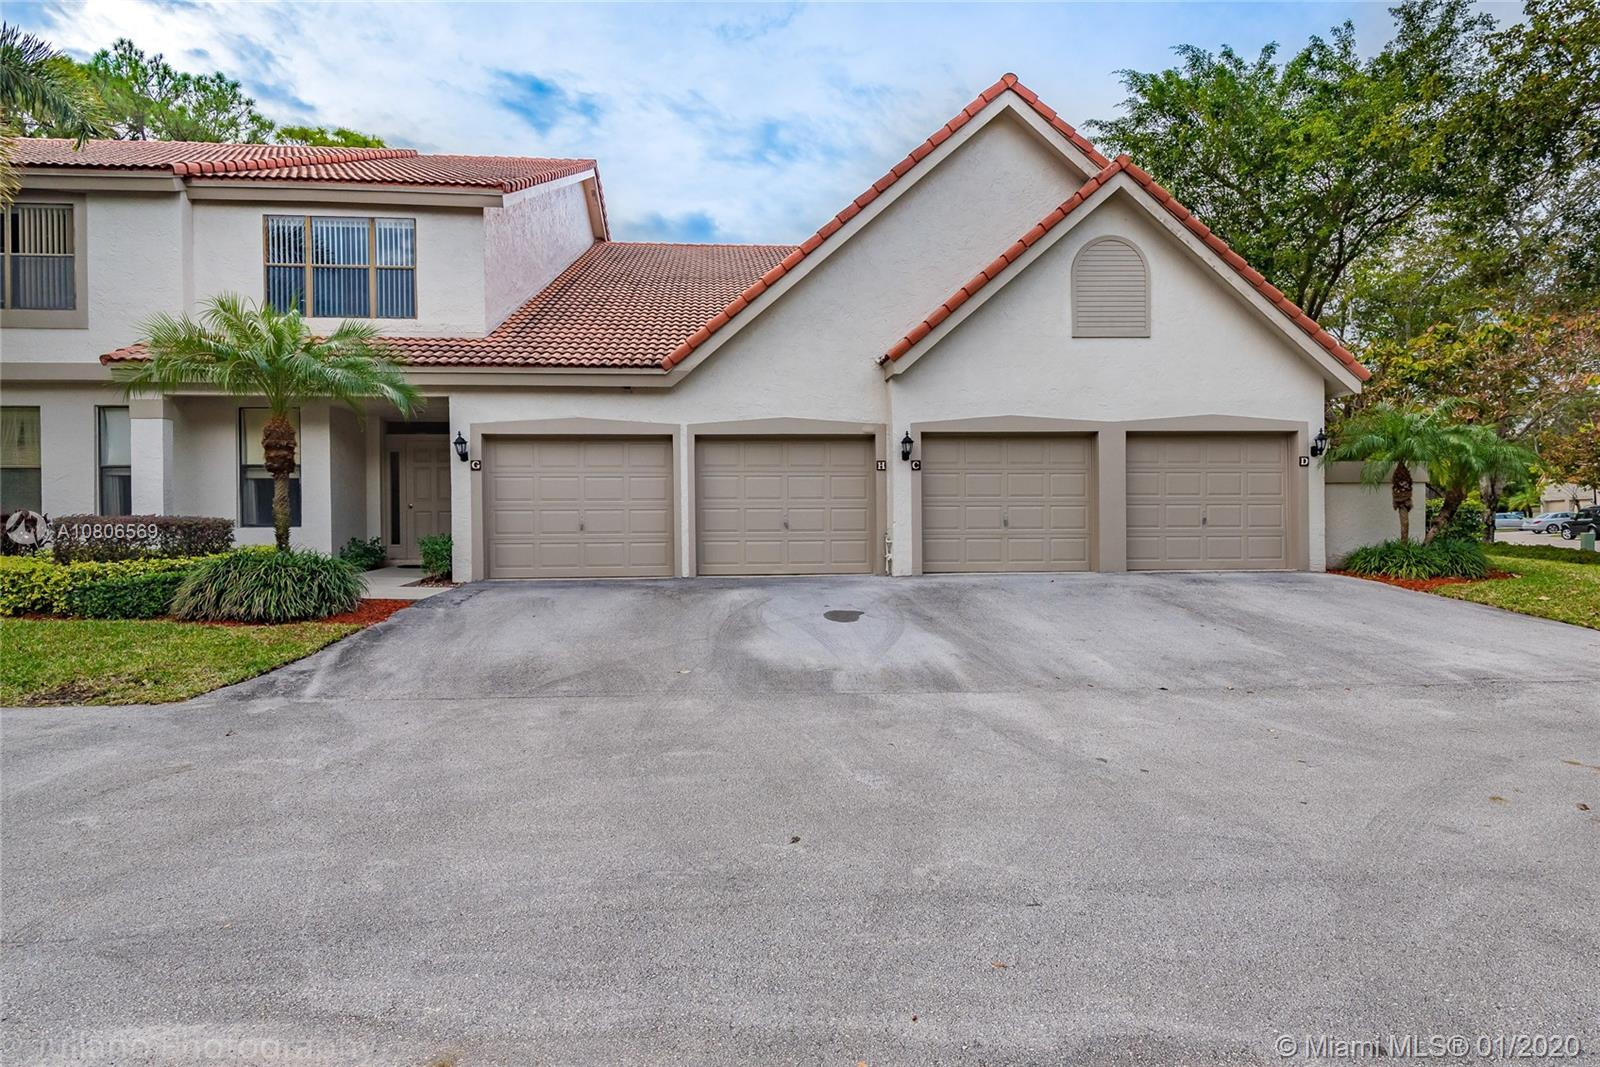 Priced to Sell! 3 Bed / 2 Bath with vaulted high ceilings, large master bedroom, large master bath,